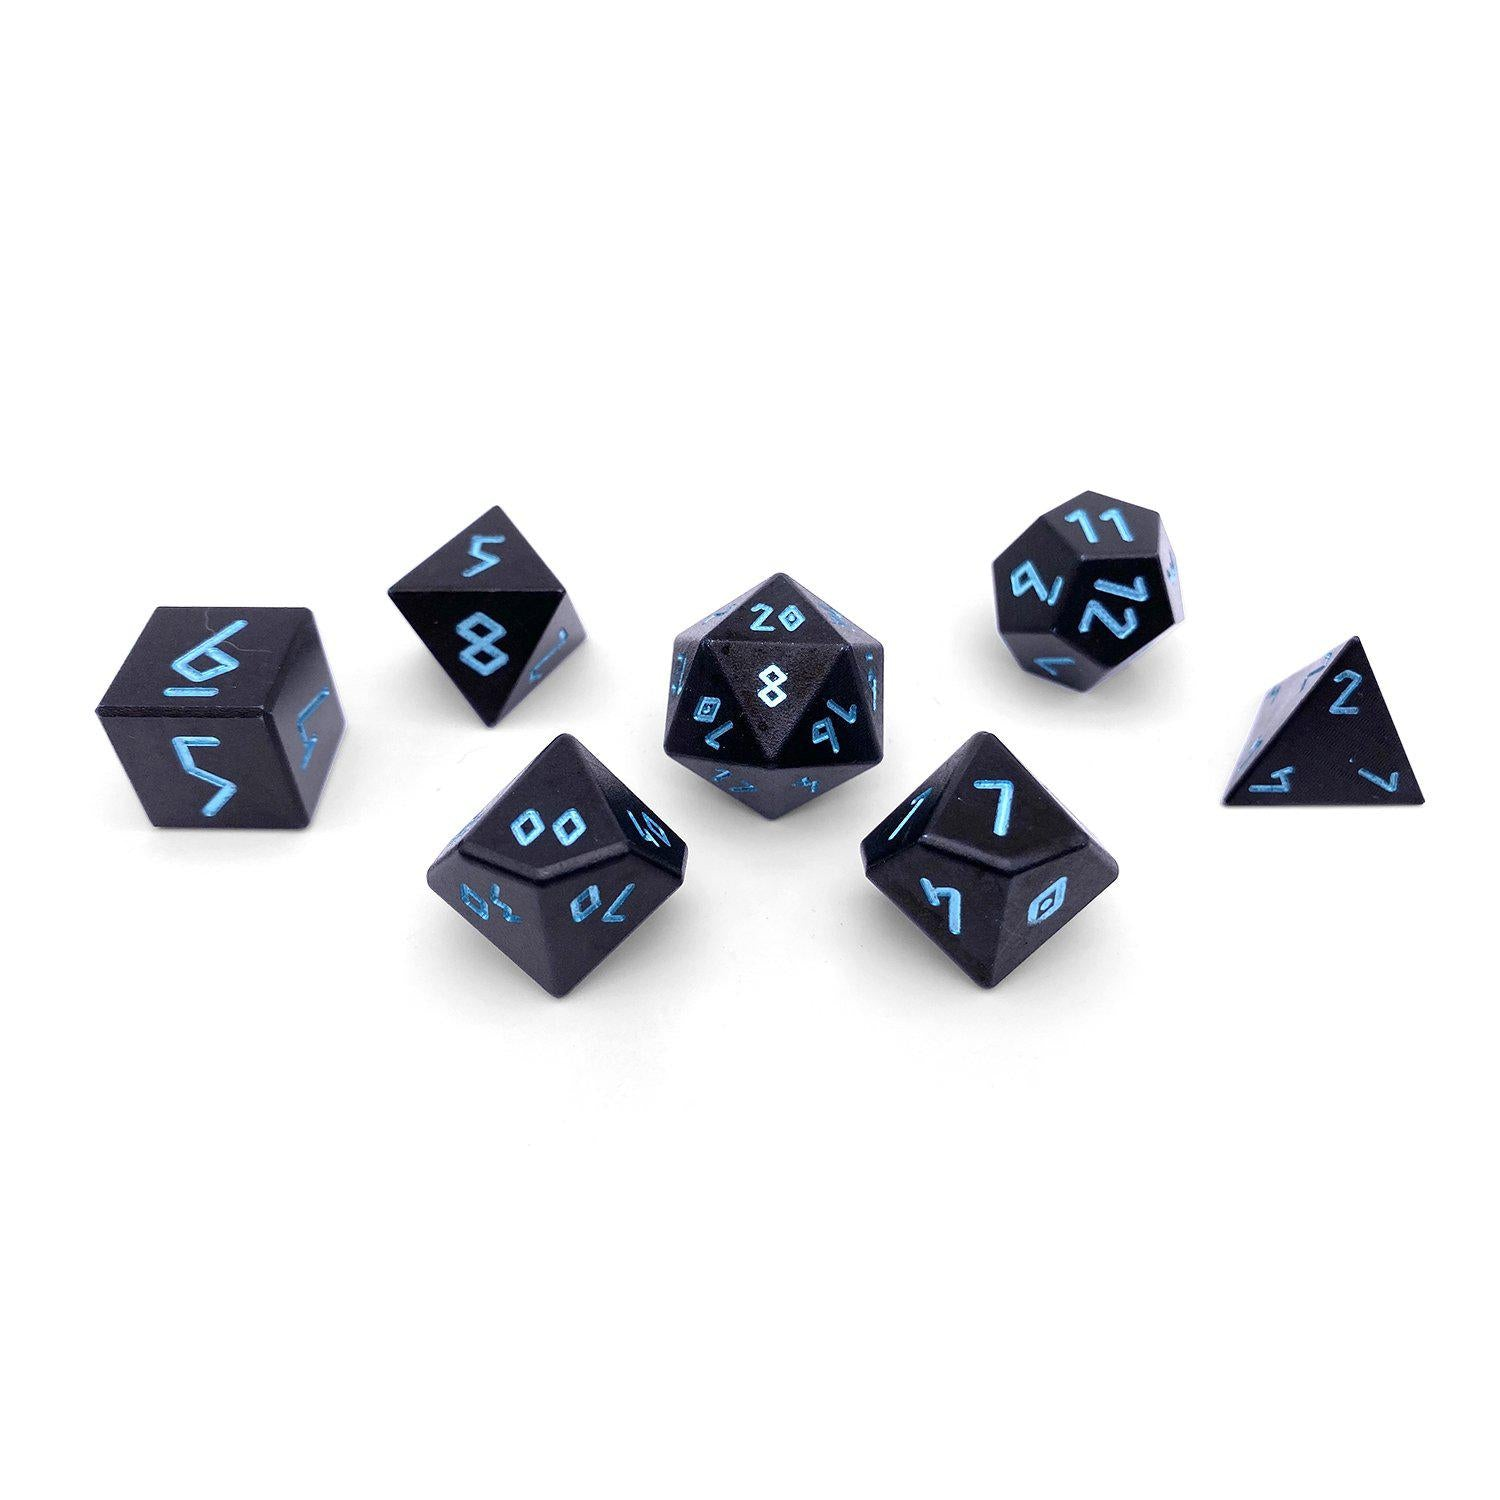 Orb Series - Orb of Ice - Set of 7 RPG Dice by Norse Foundry Precision Polyhedral Dice Set